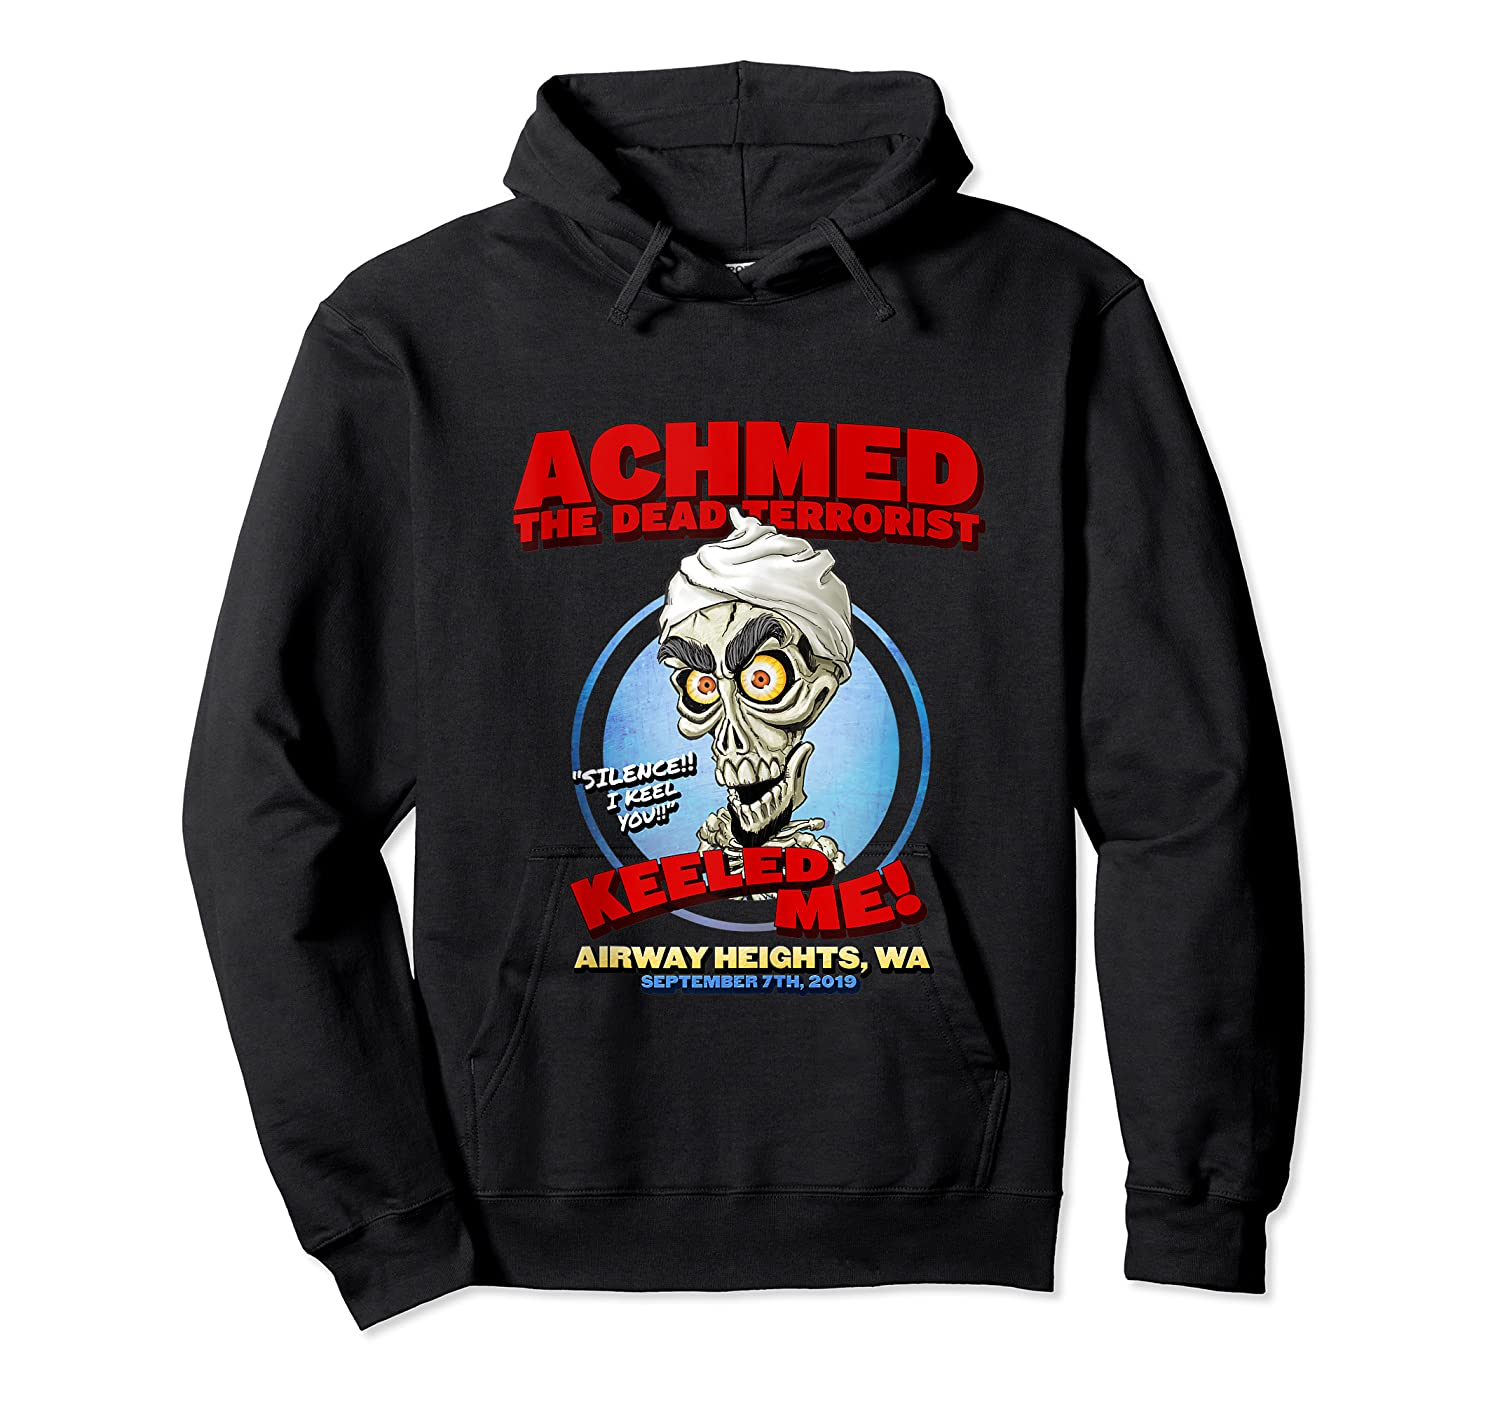 Achmed The Dead Terrorist Airway Heights Wa Tank Top Shirts Unisex Pullover Hoodie